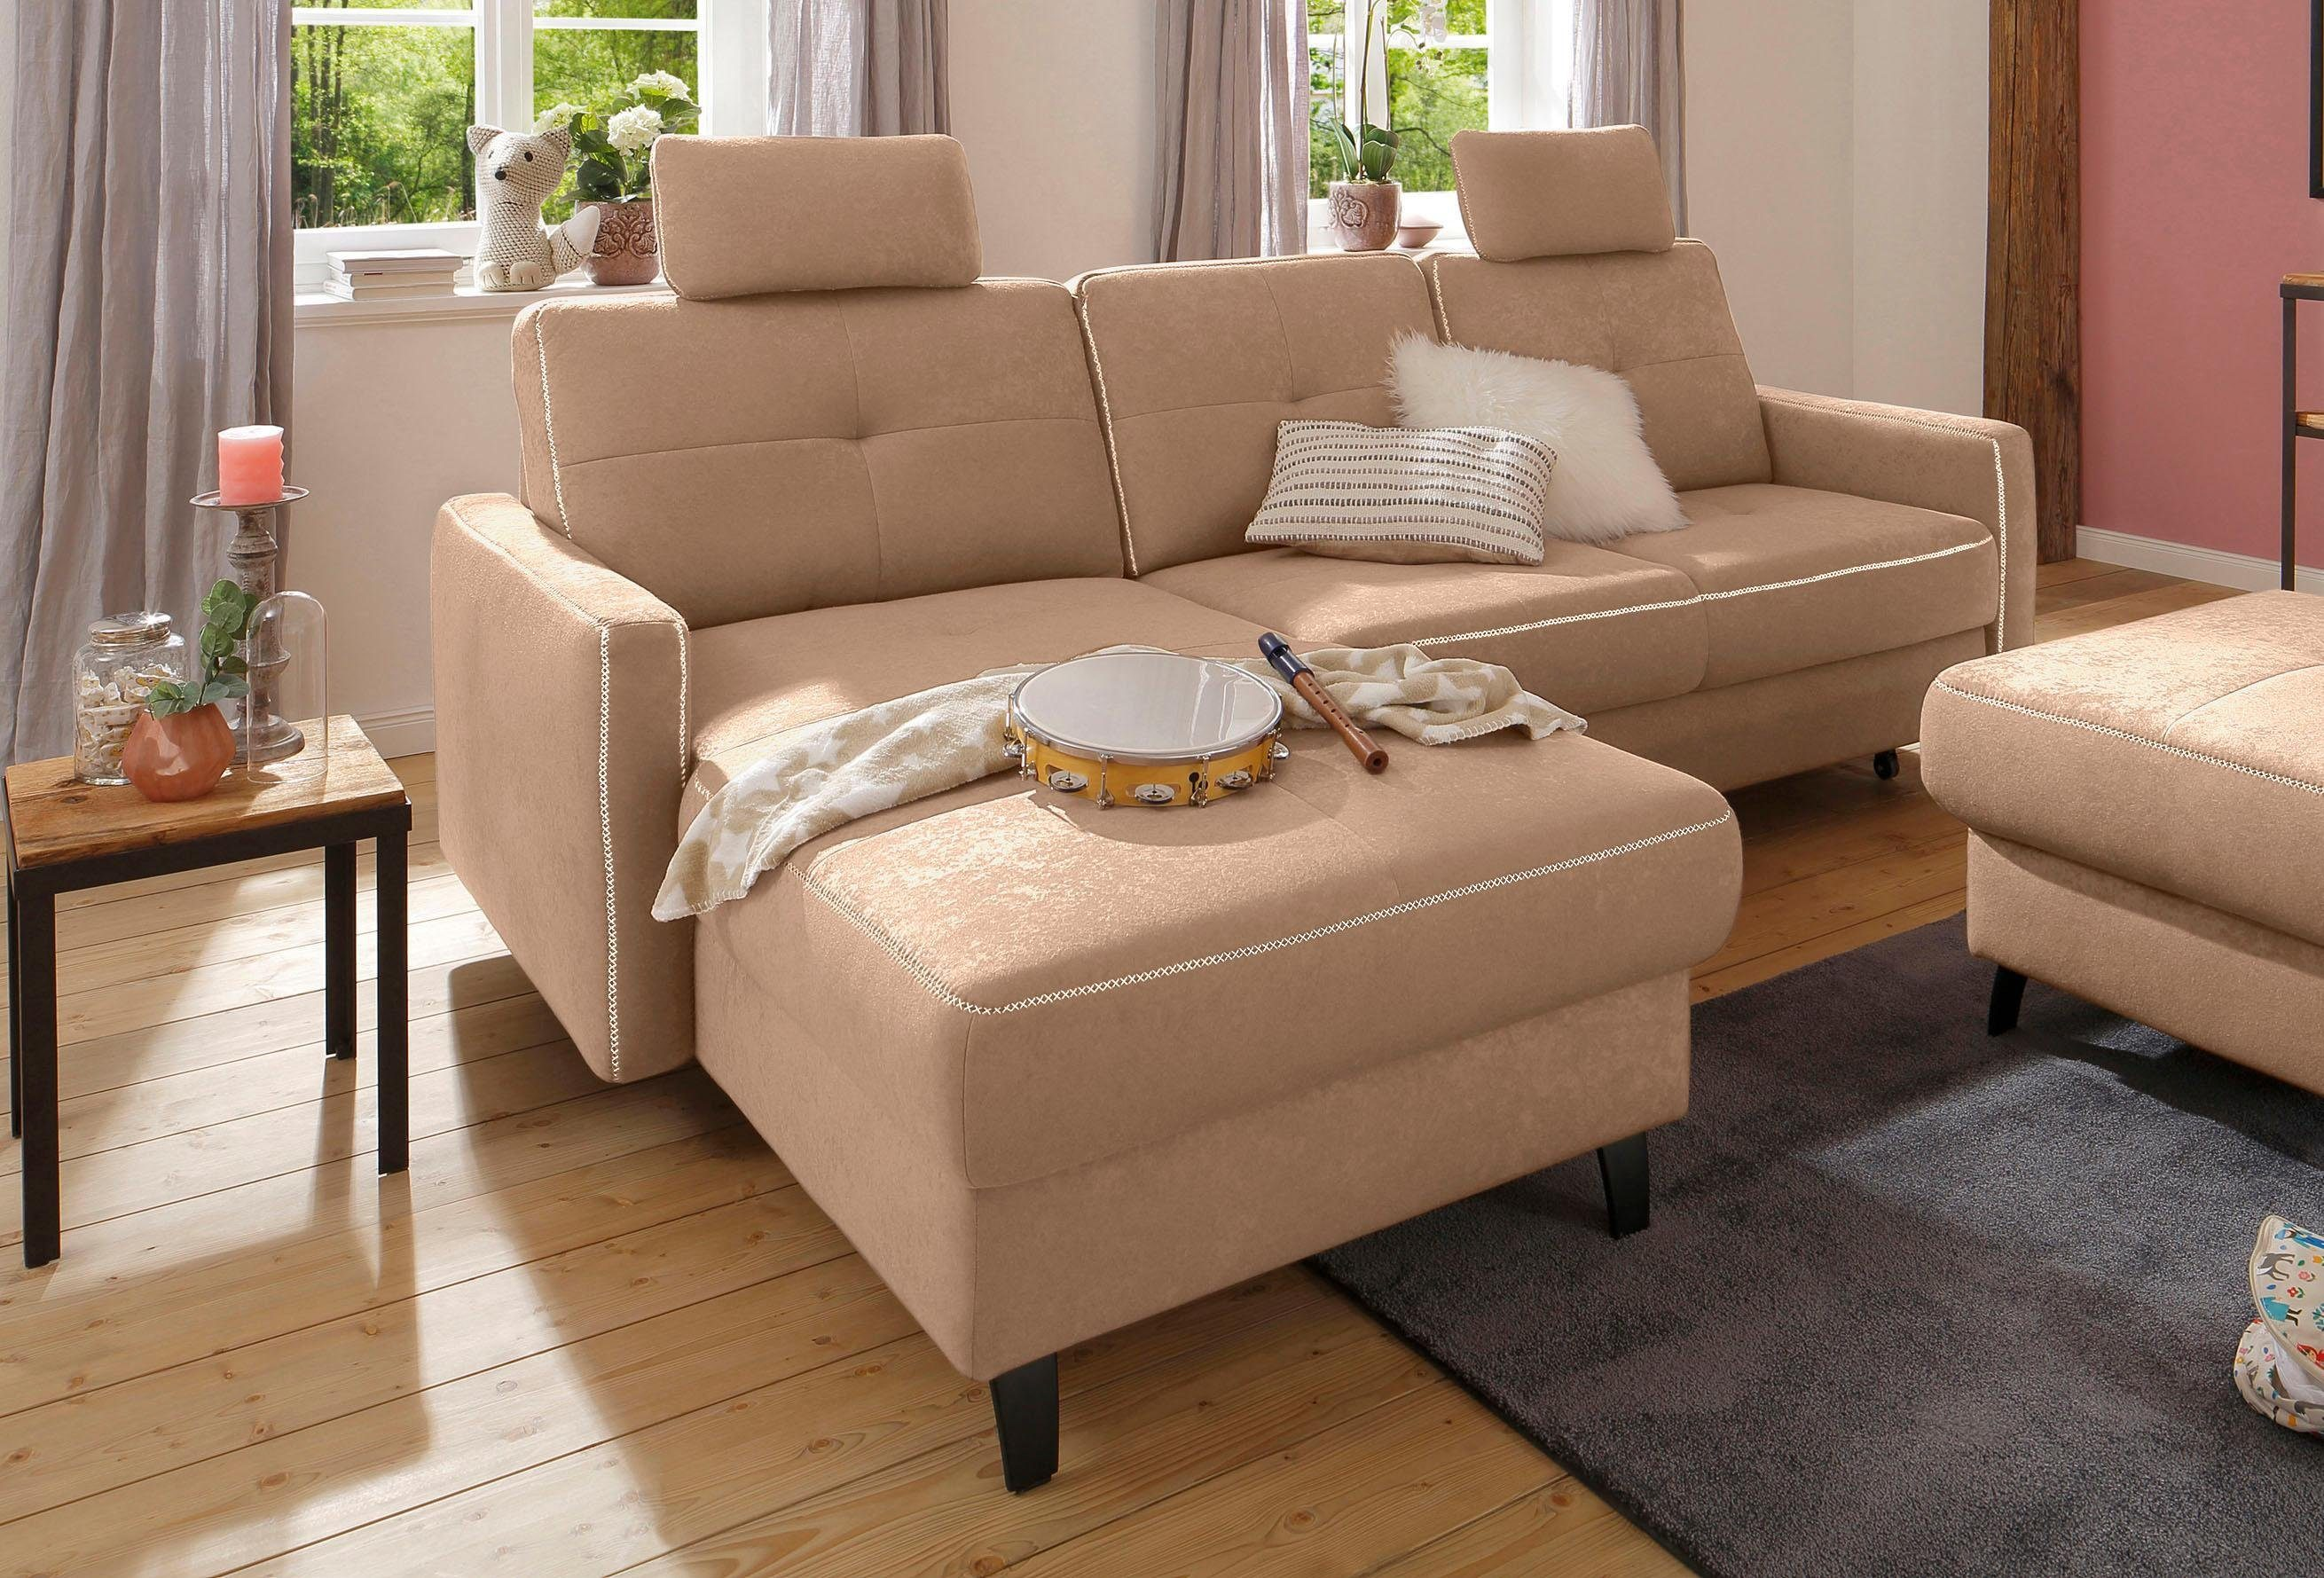 Rattan Ecksofa Mit Bettfunktion Home Affaire Ecksofa Antonio Recamiere Federkern Wahlweise Mit Bettfunktion Und Bettkasten